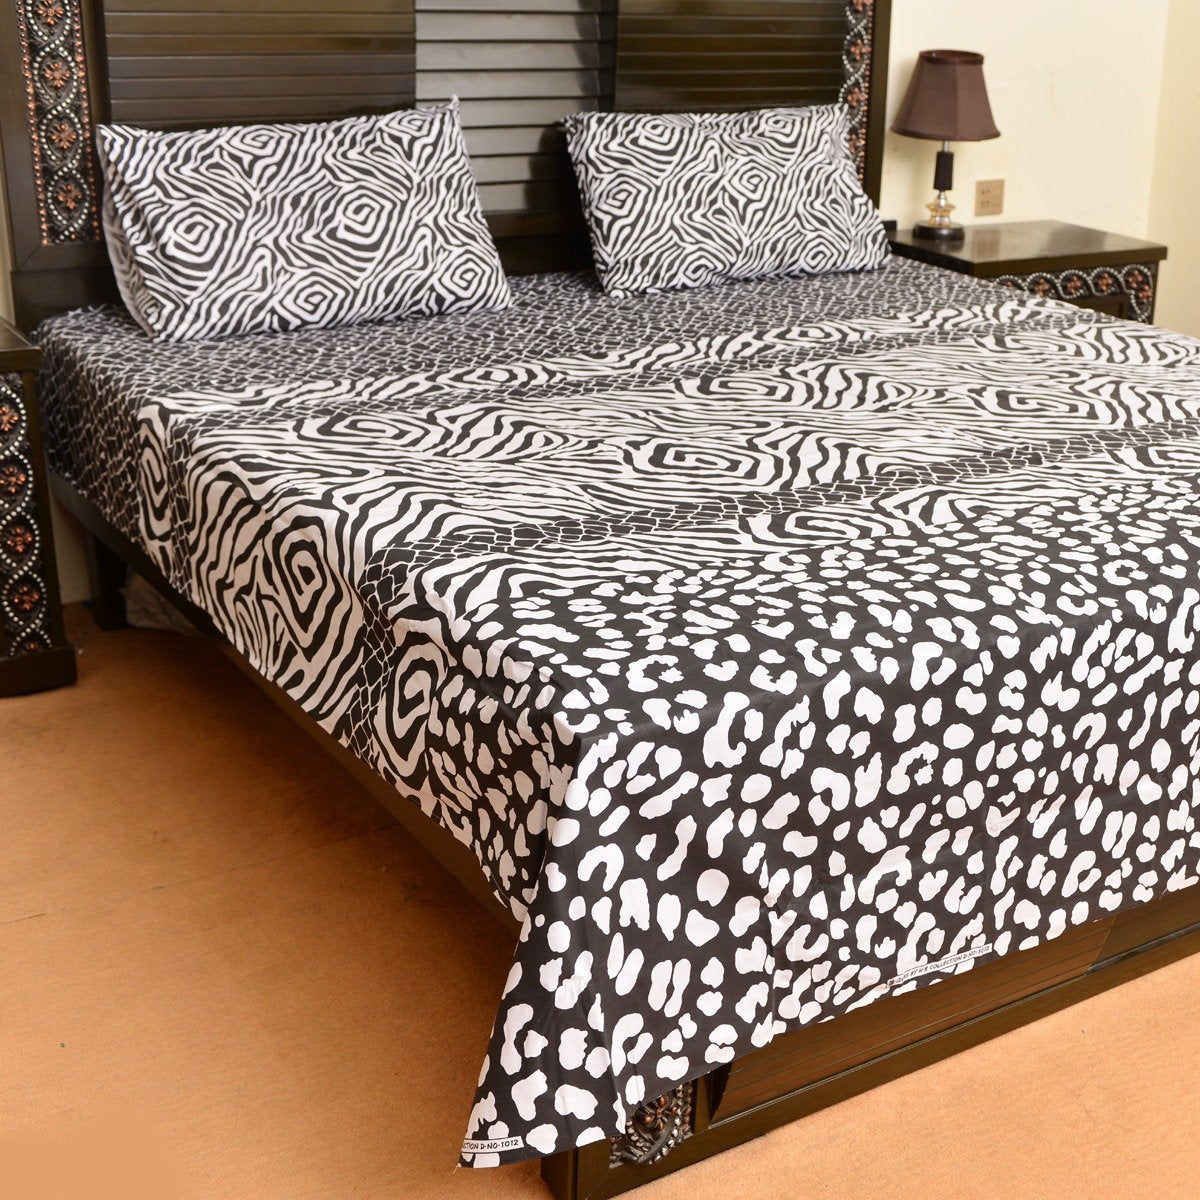 White leopard cotton bed sheet with 2 pillow cases